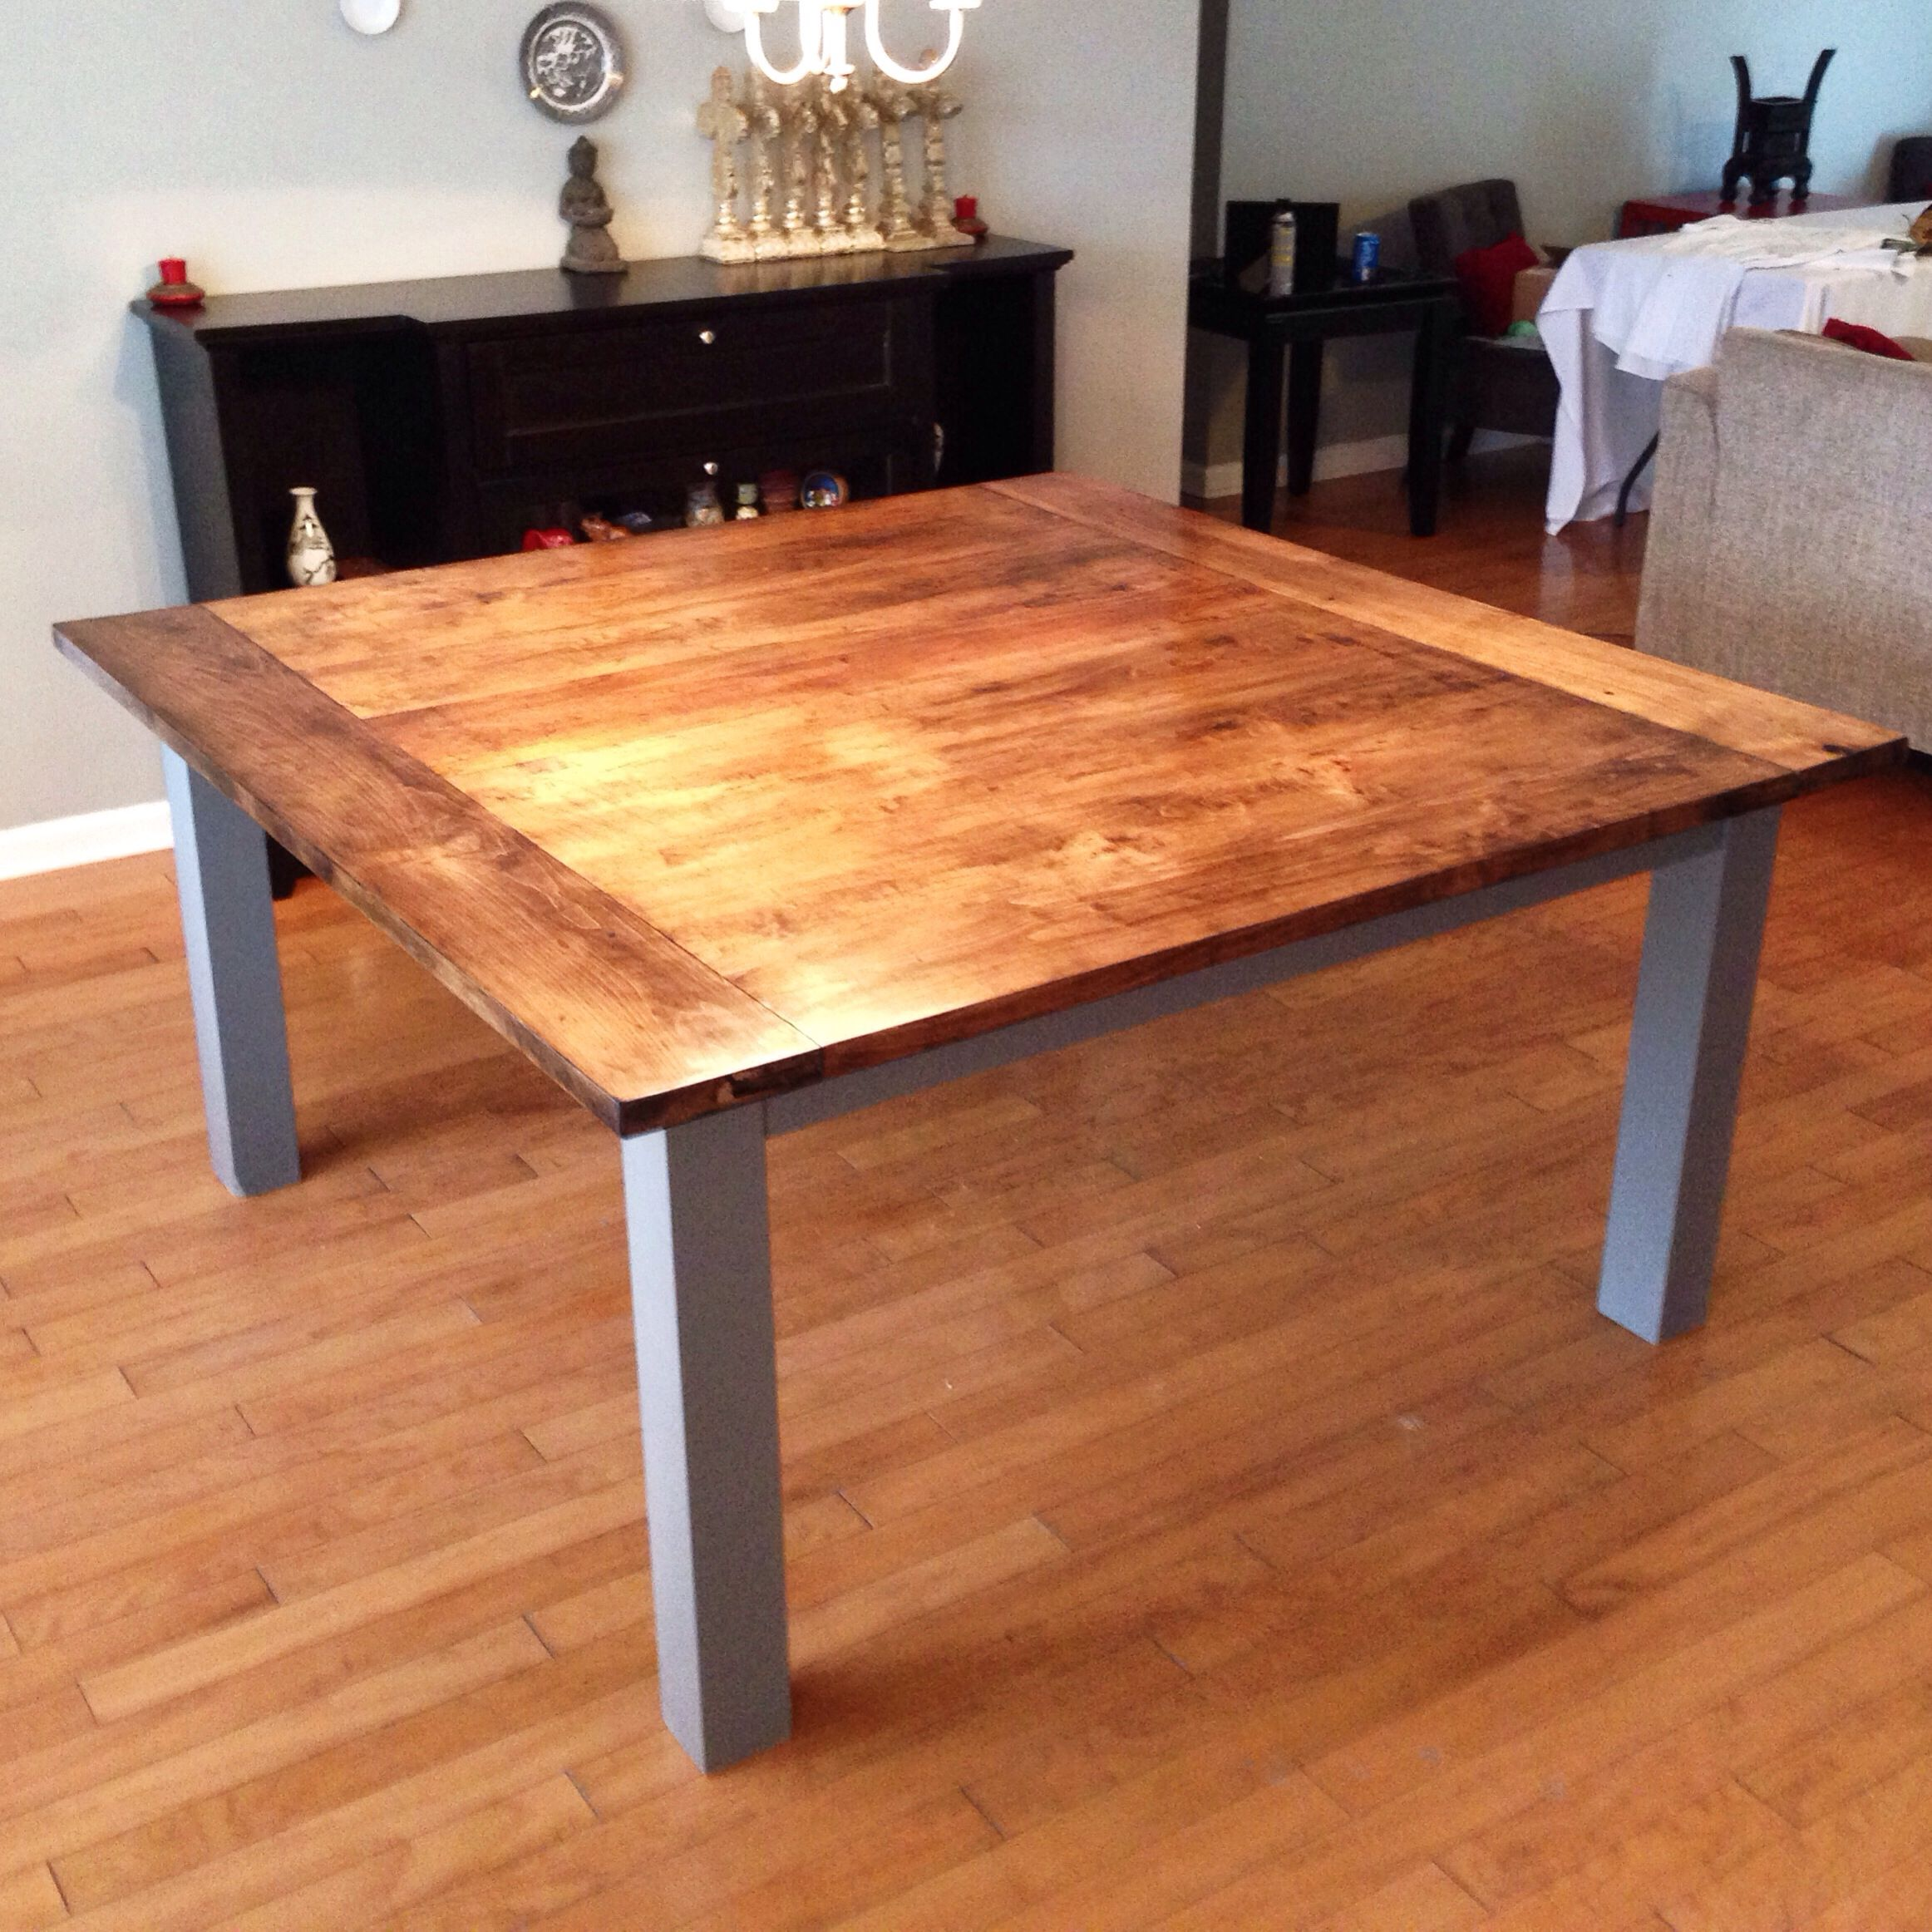 Shiro Walnut Dark Wood Modern Furniture Large Dining Table: Large Stained Maple, Solid Wood Dining Table. Stained Dark